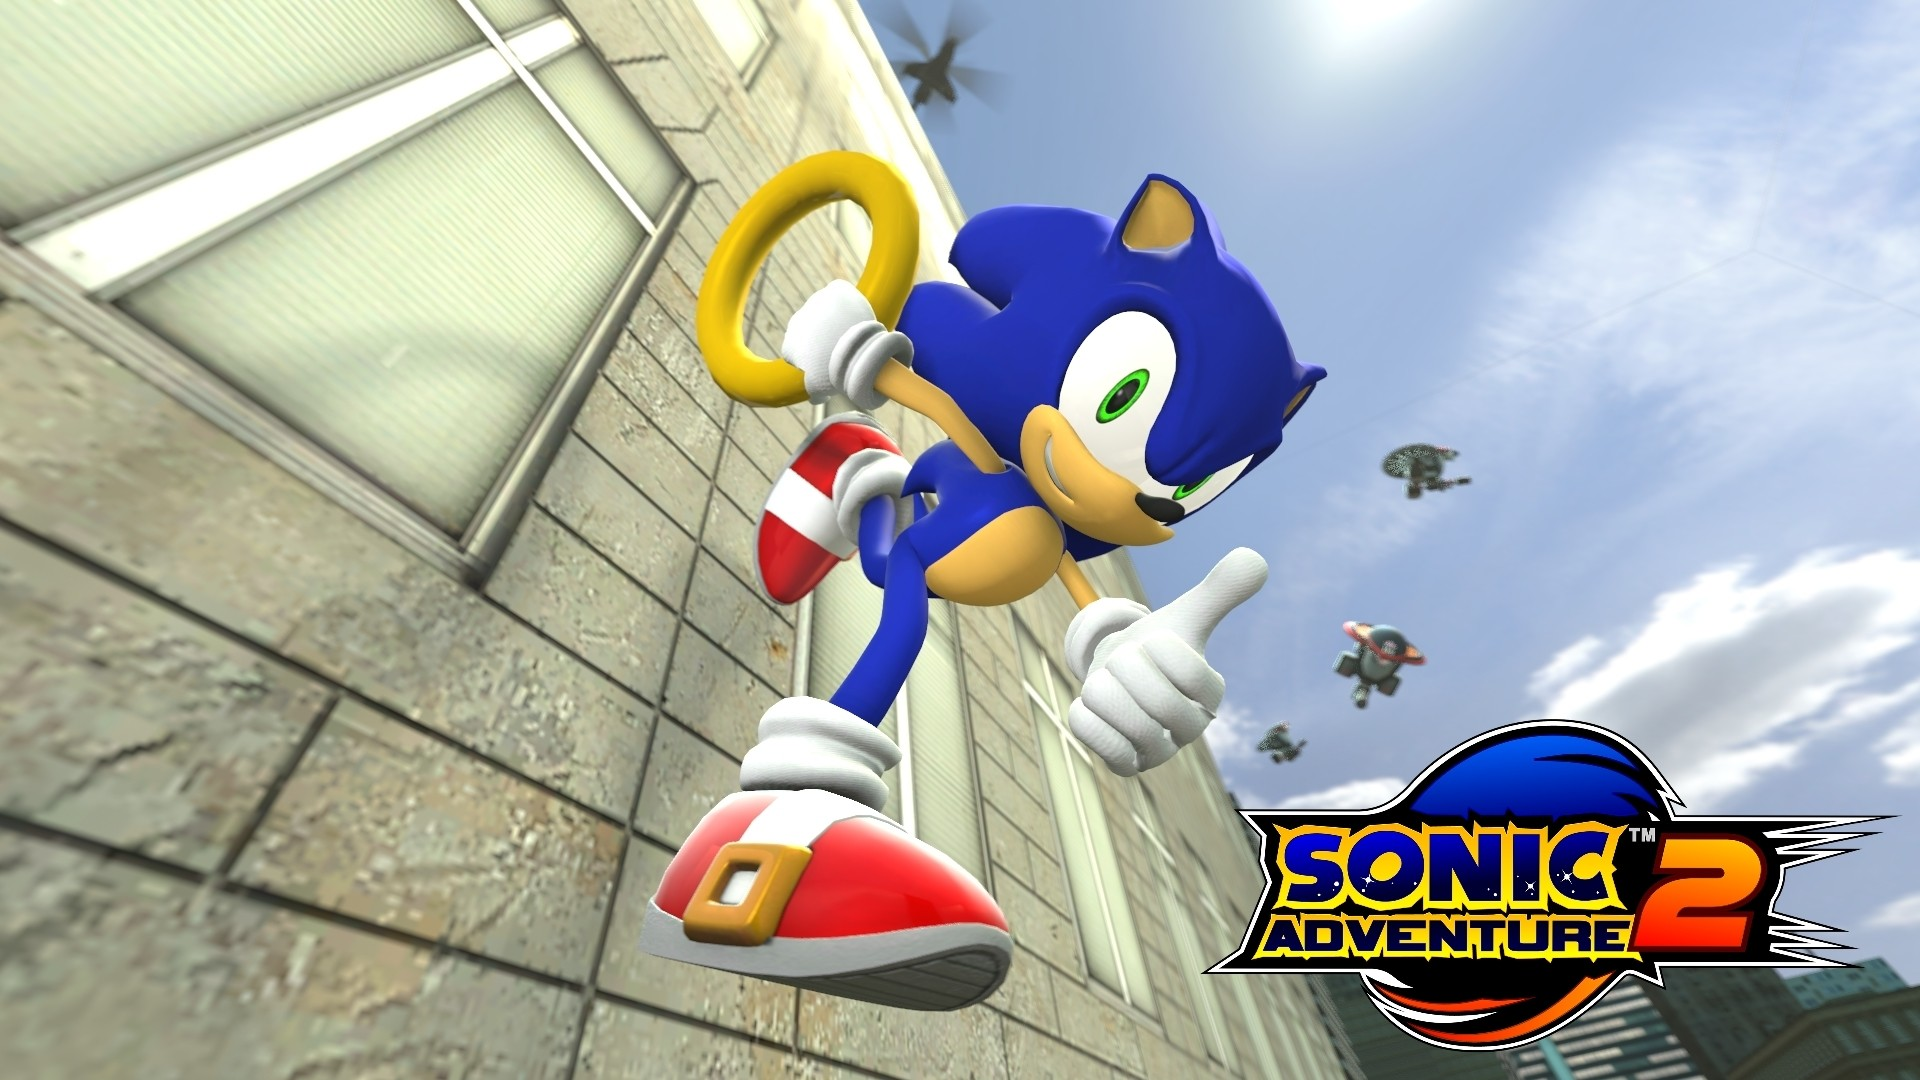 Sonic Adventure Wallpapers Hd Wallpaper Collections